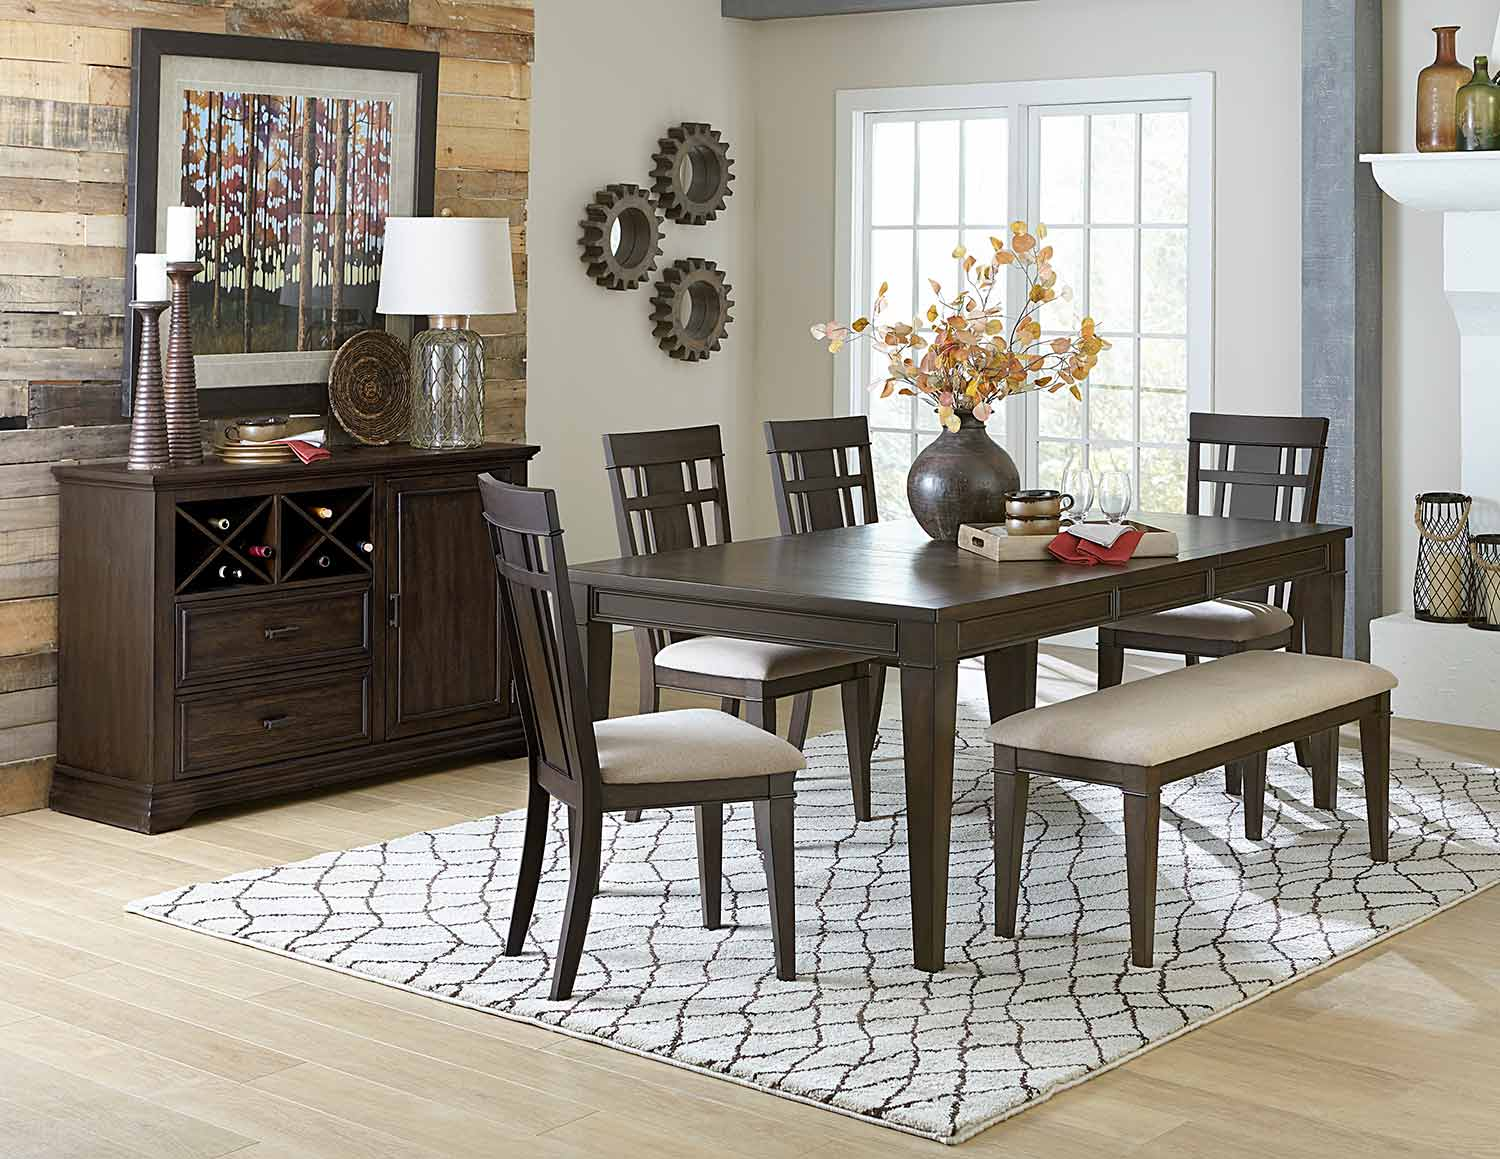 Homelegance Makah Rectangular Dining Set - Dark Brown